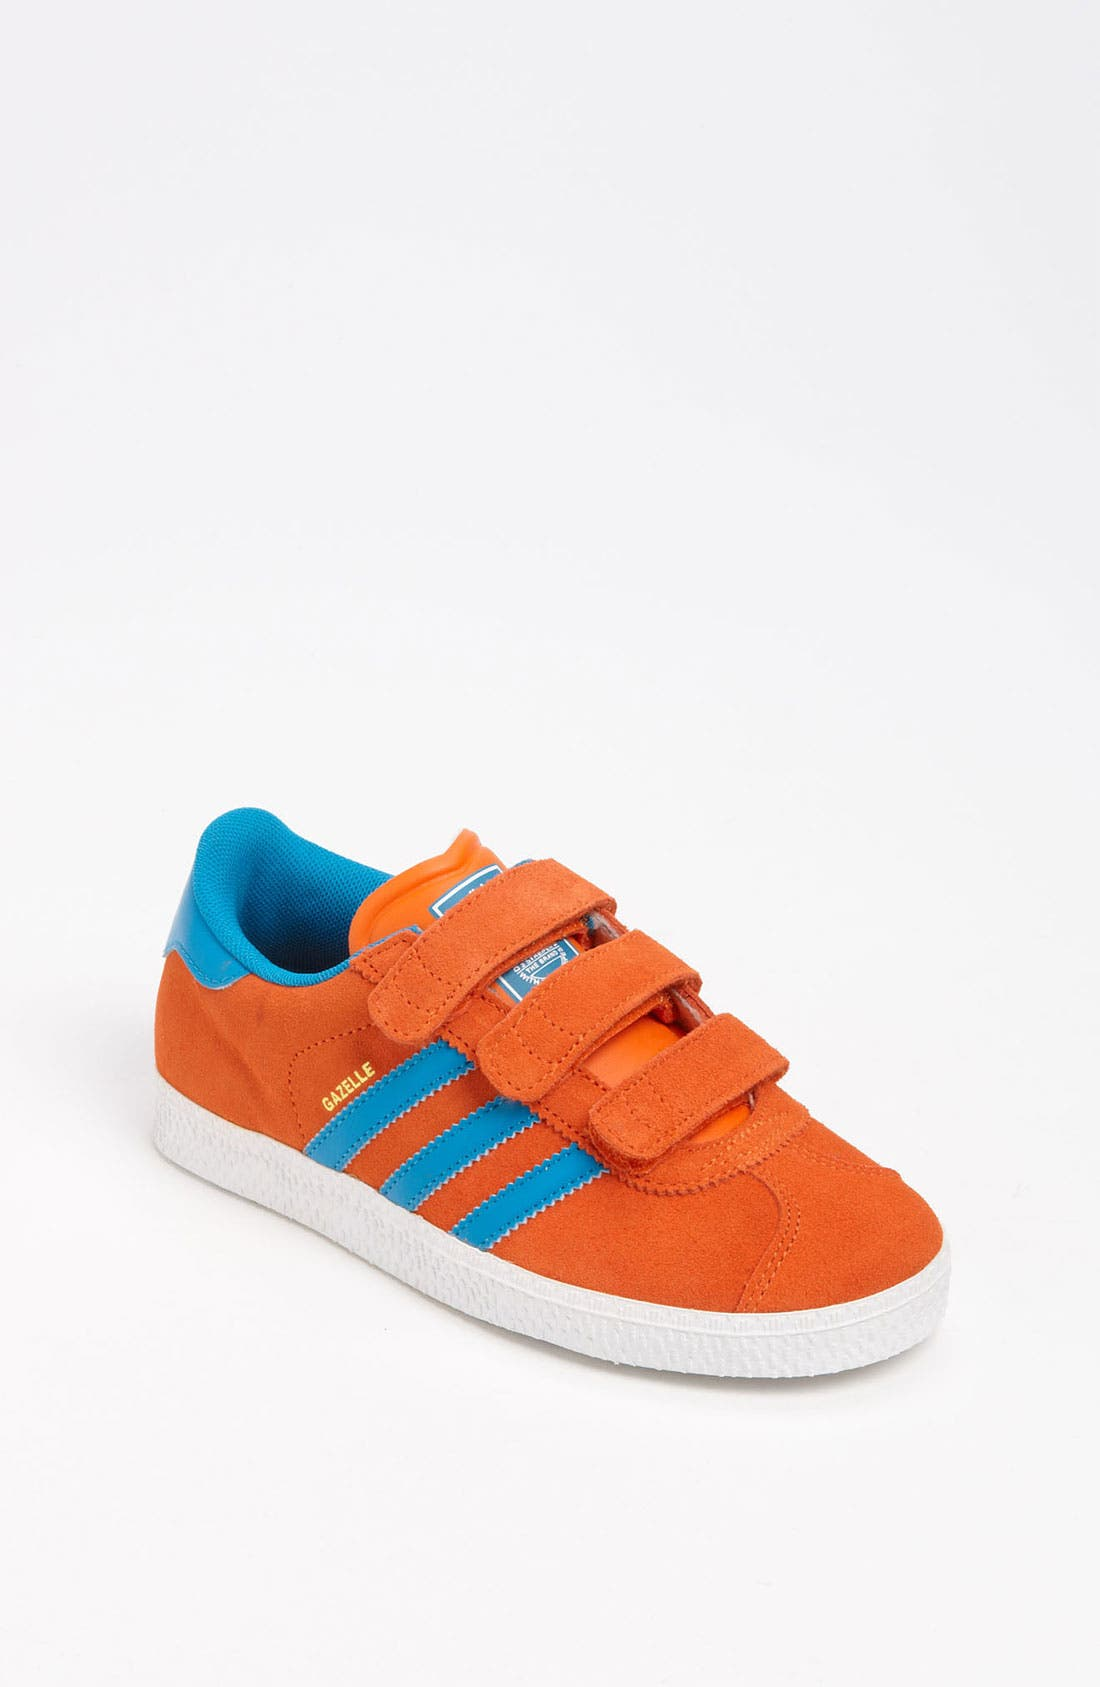 Main Image - adidas 'Gazelle 2' Sneaker (Toddler & Little Kid)